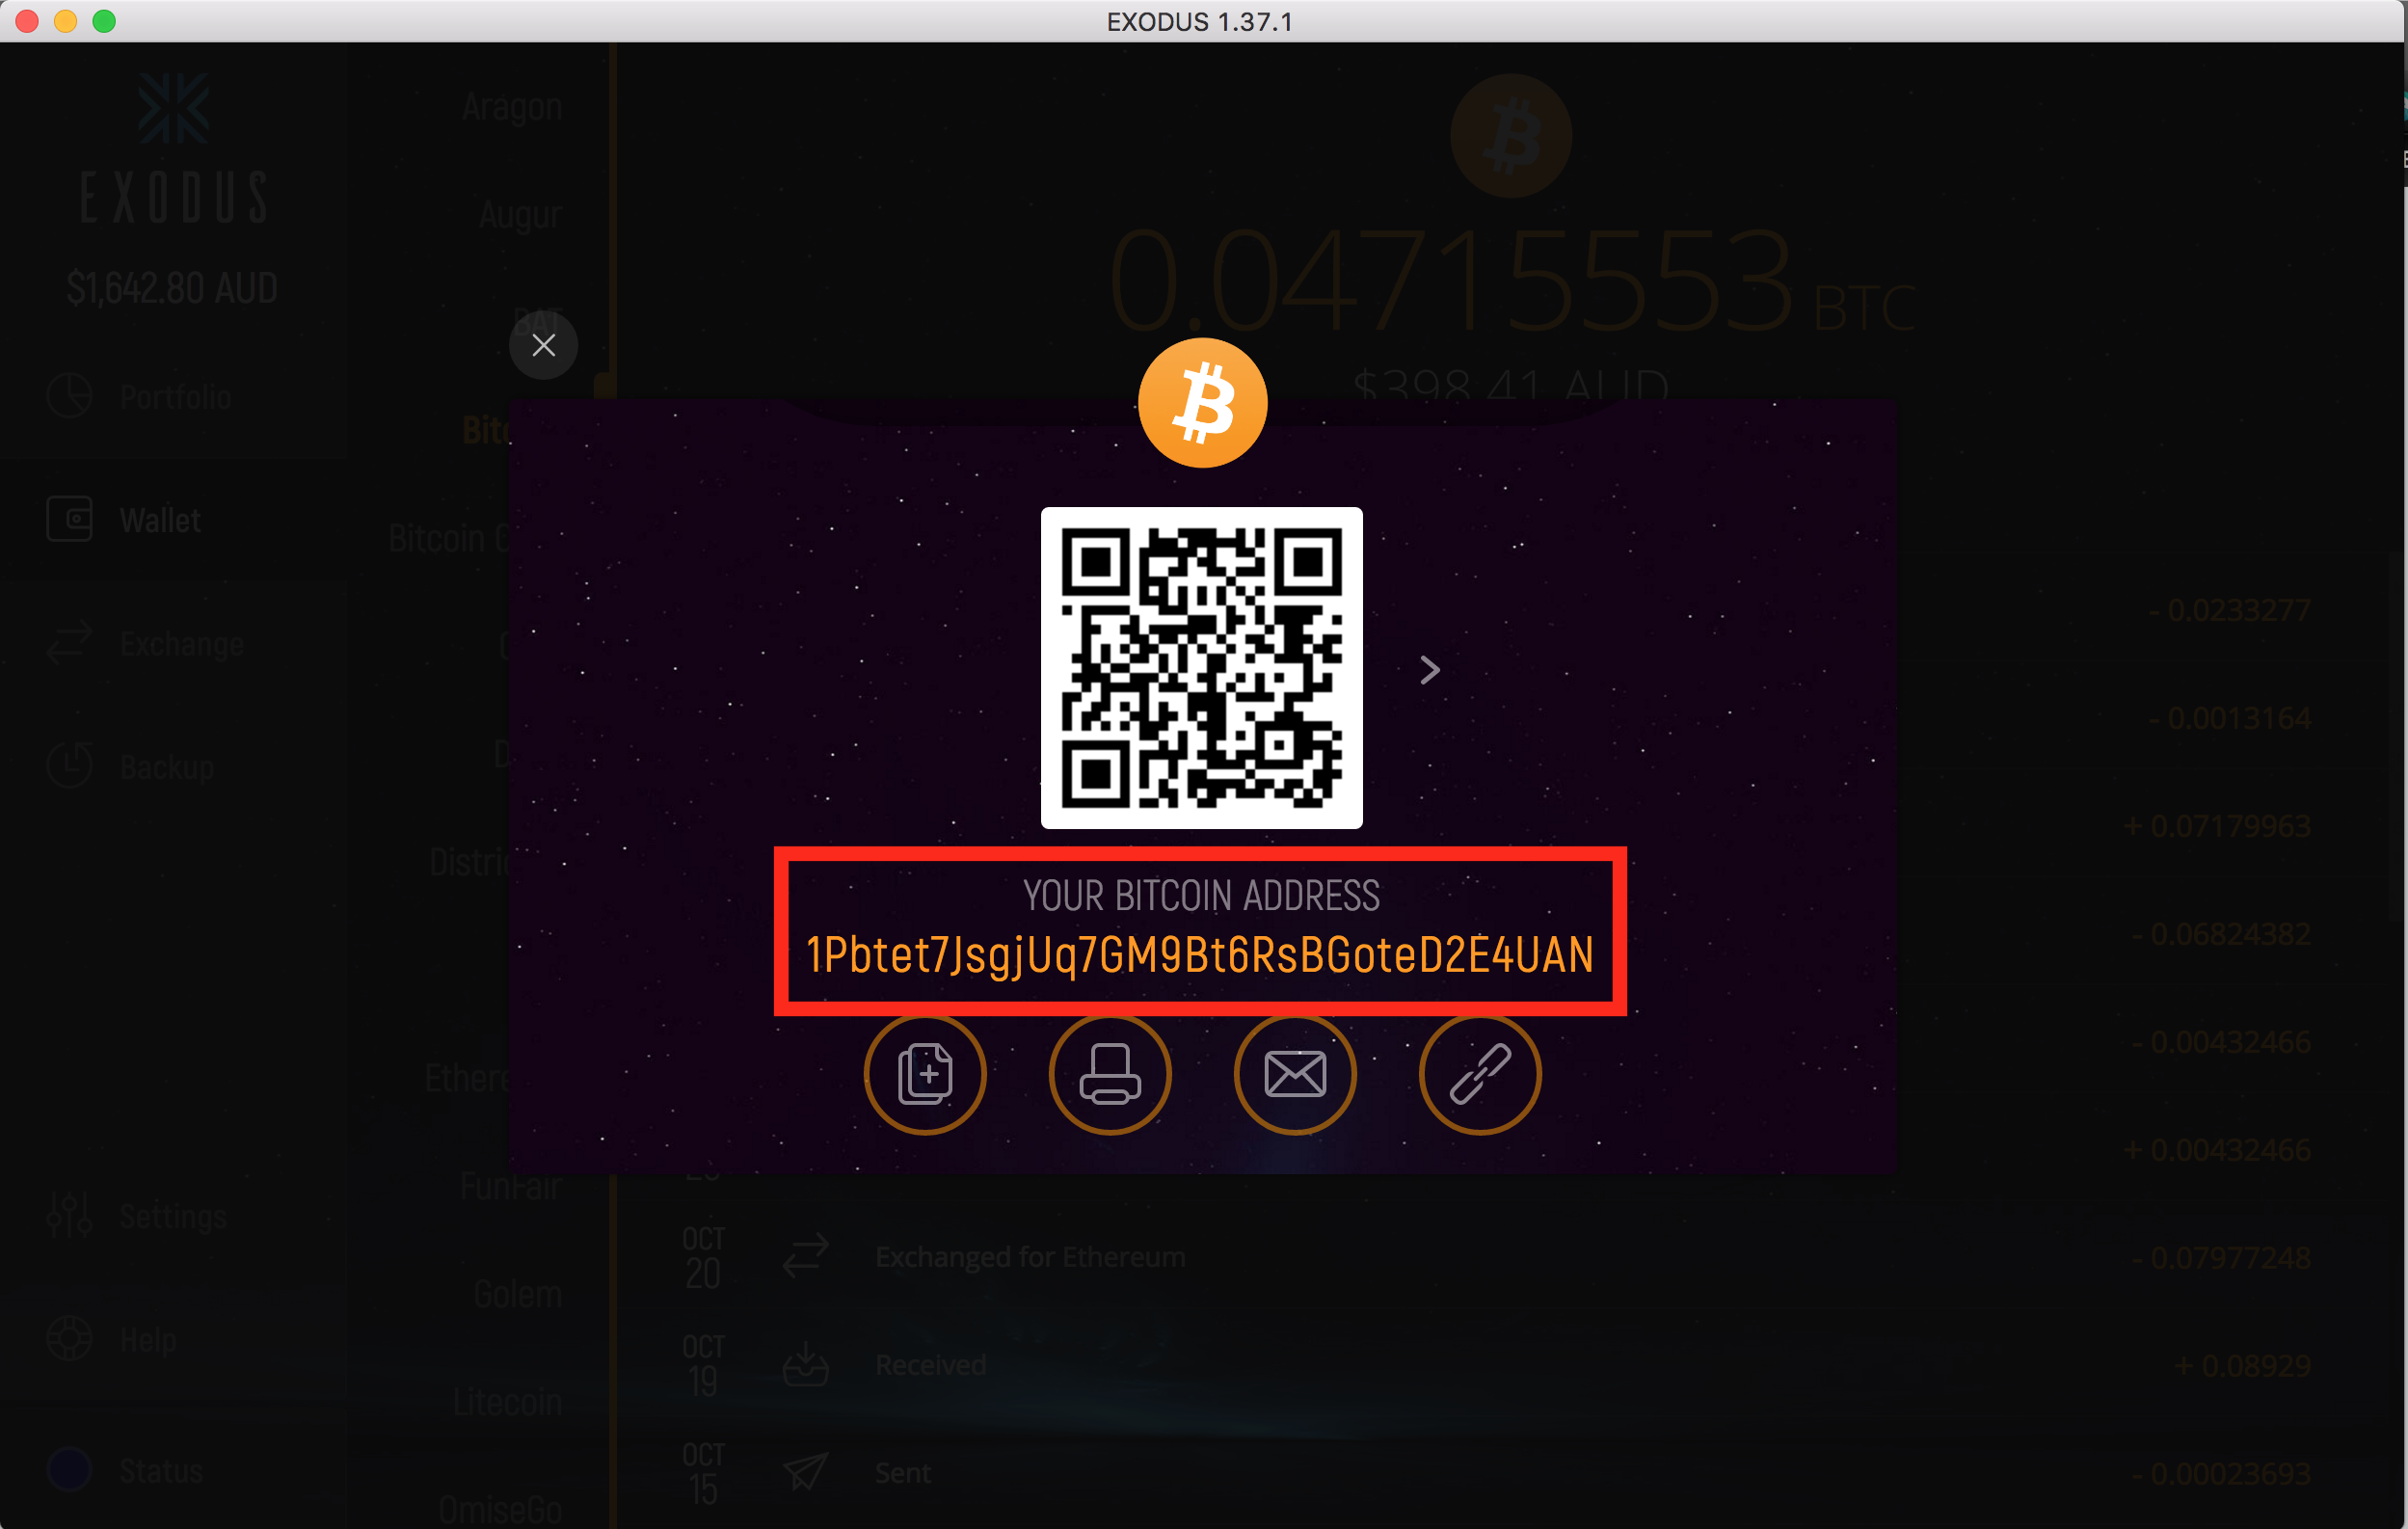 sent wrong cryptocurrency to wallet